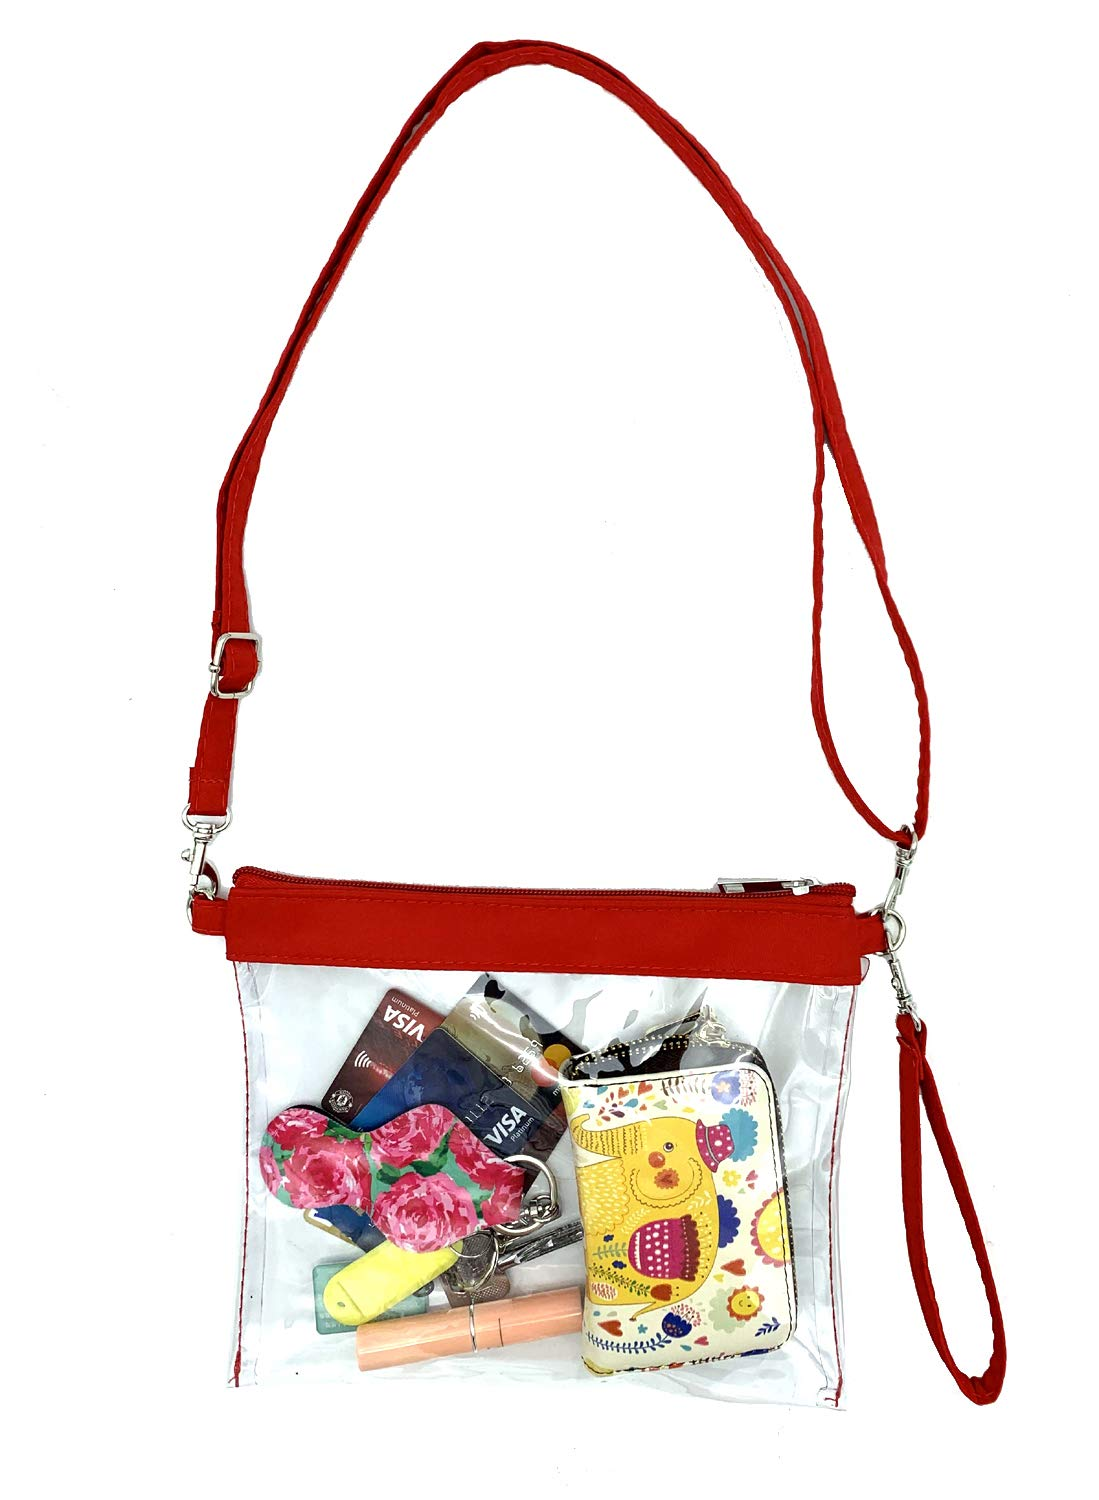 Gym Zippered Tote Bag Clear Toiletry Bag Clear Gameday Bag with Adjustable Shoulder Strap and Wrist Strap for Work Wanty New Clear Crossbody Purse Bag Home and Sports Games